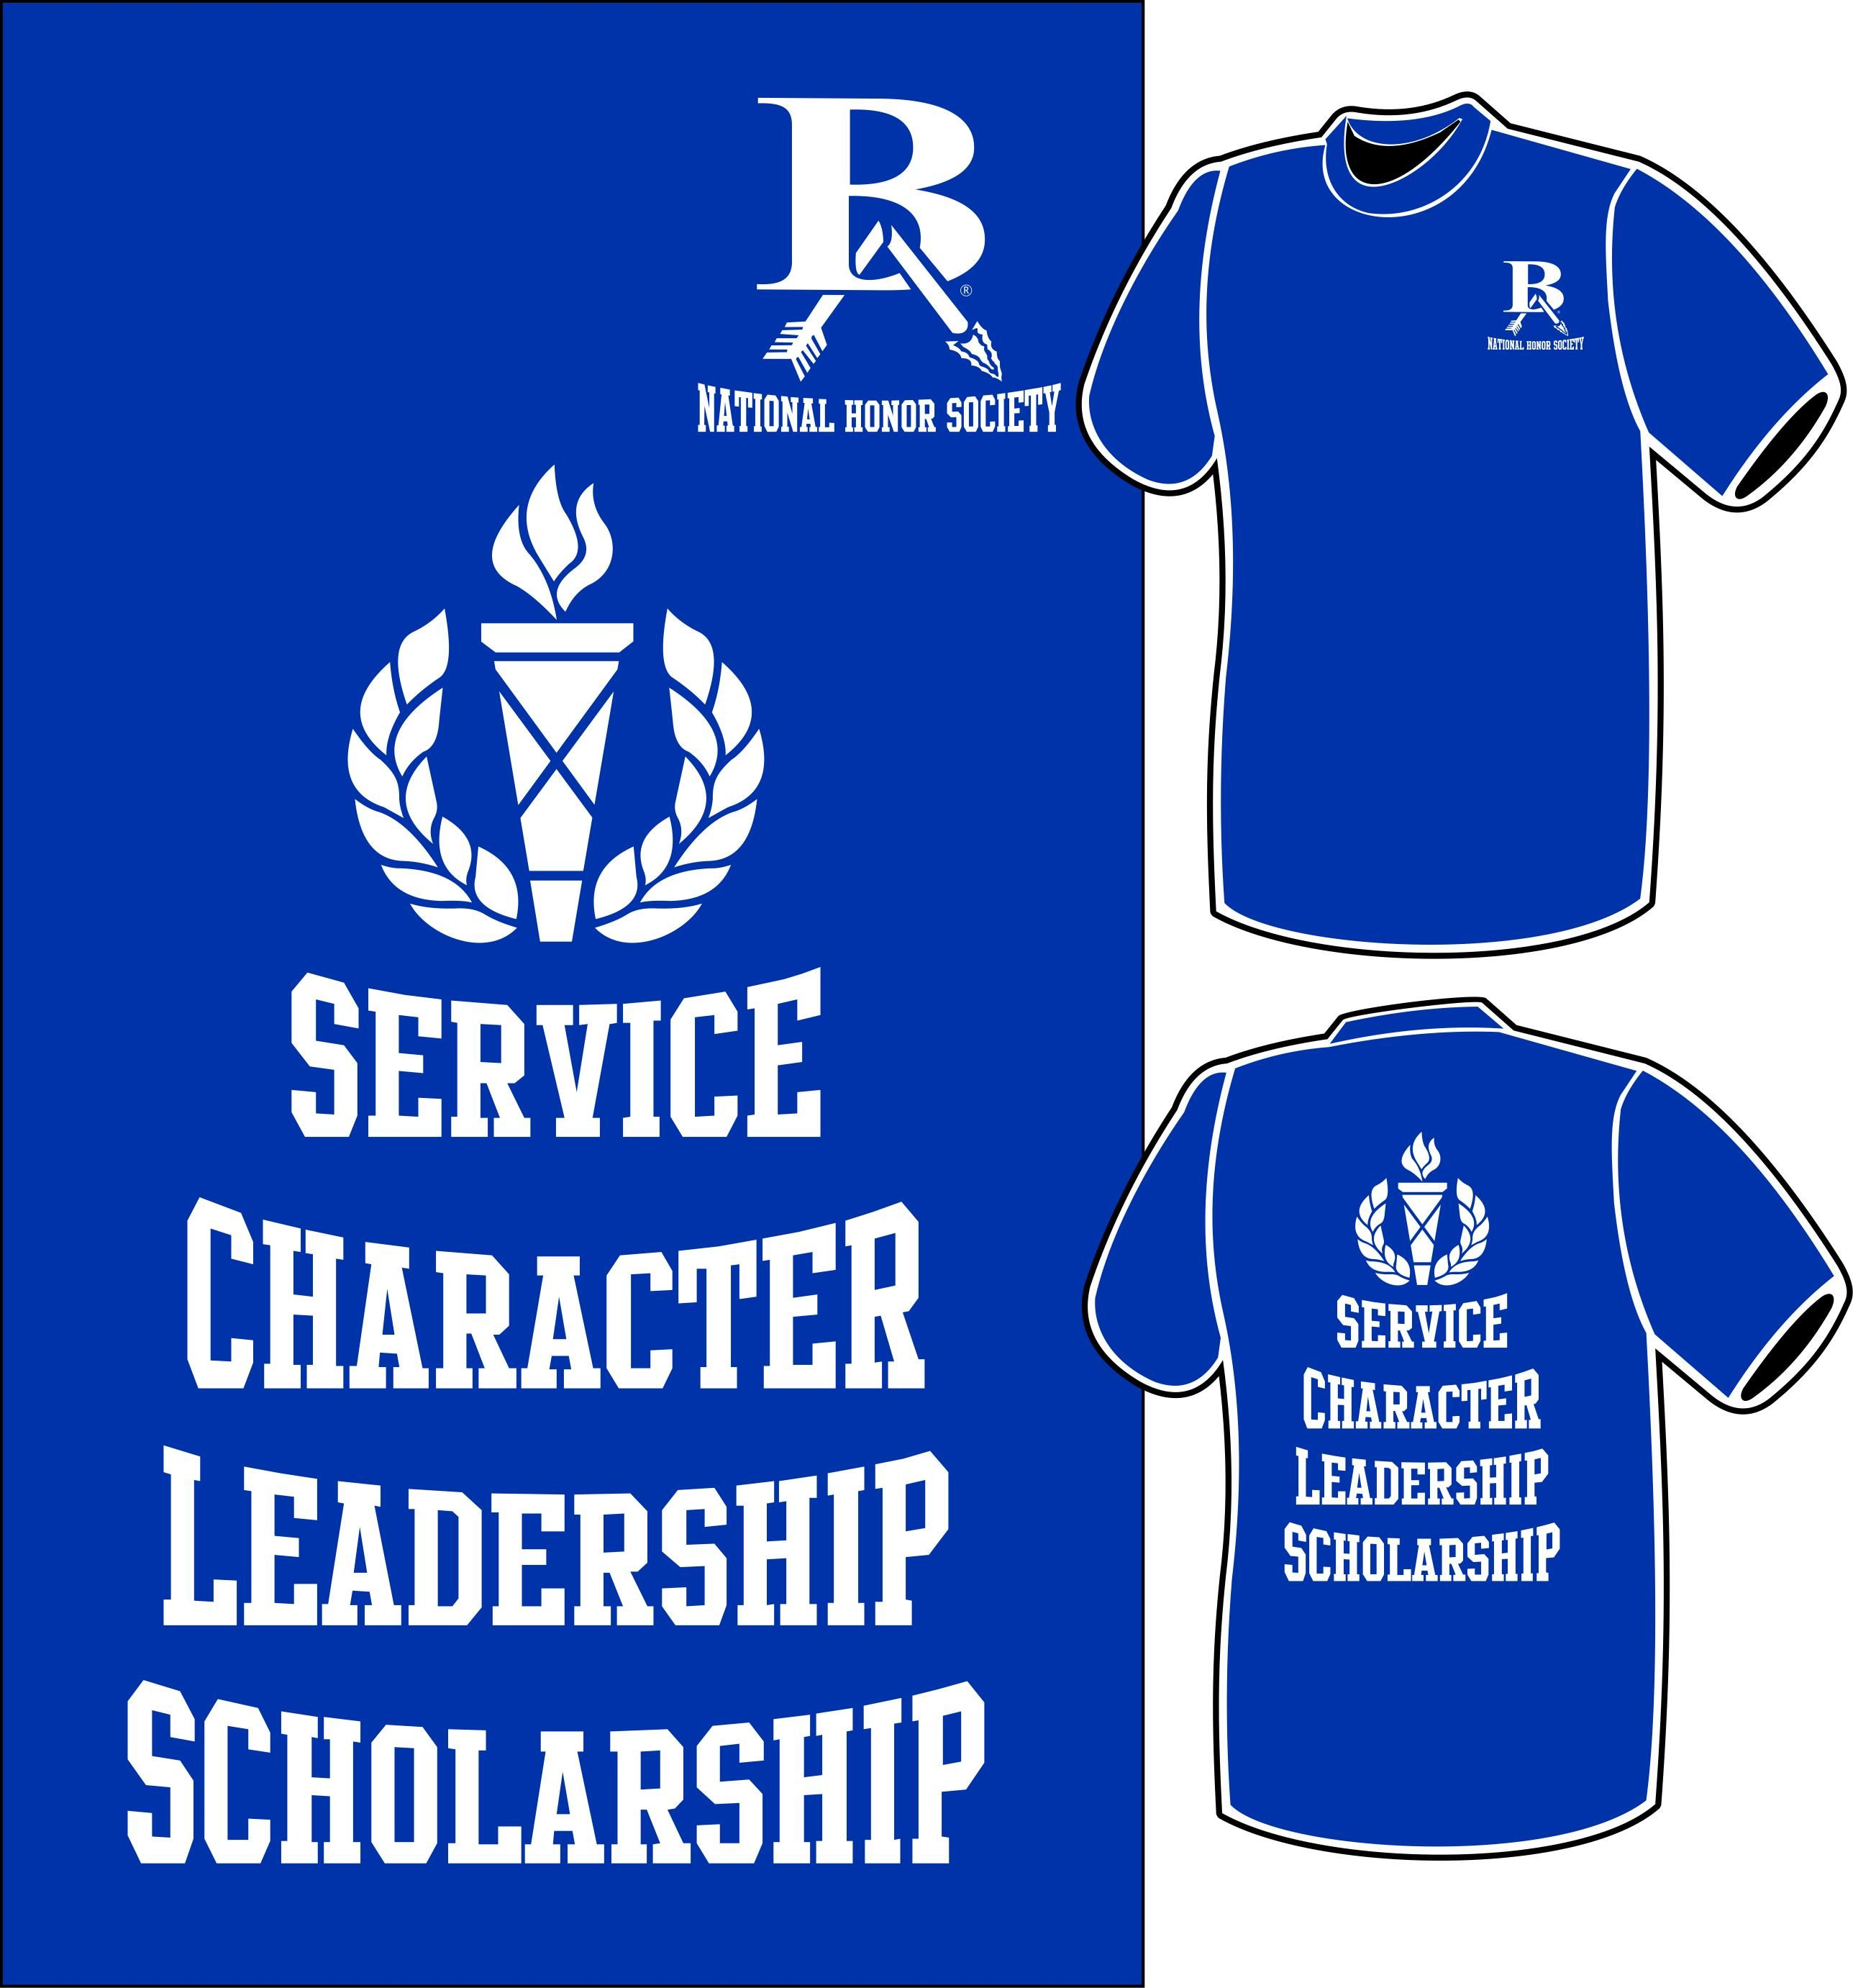 Leadership essay national honor society